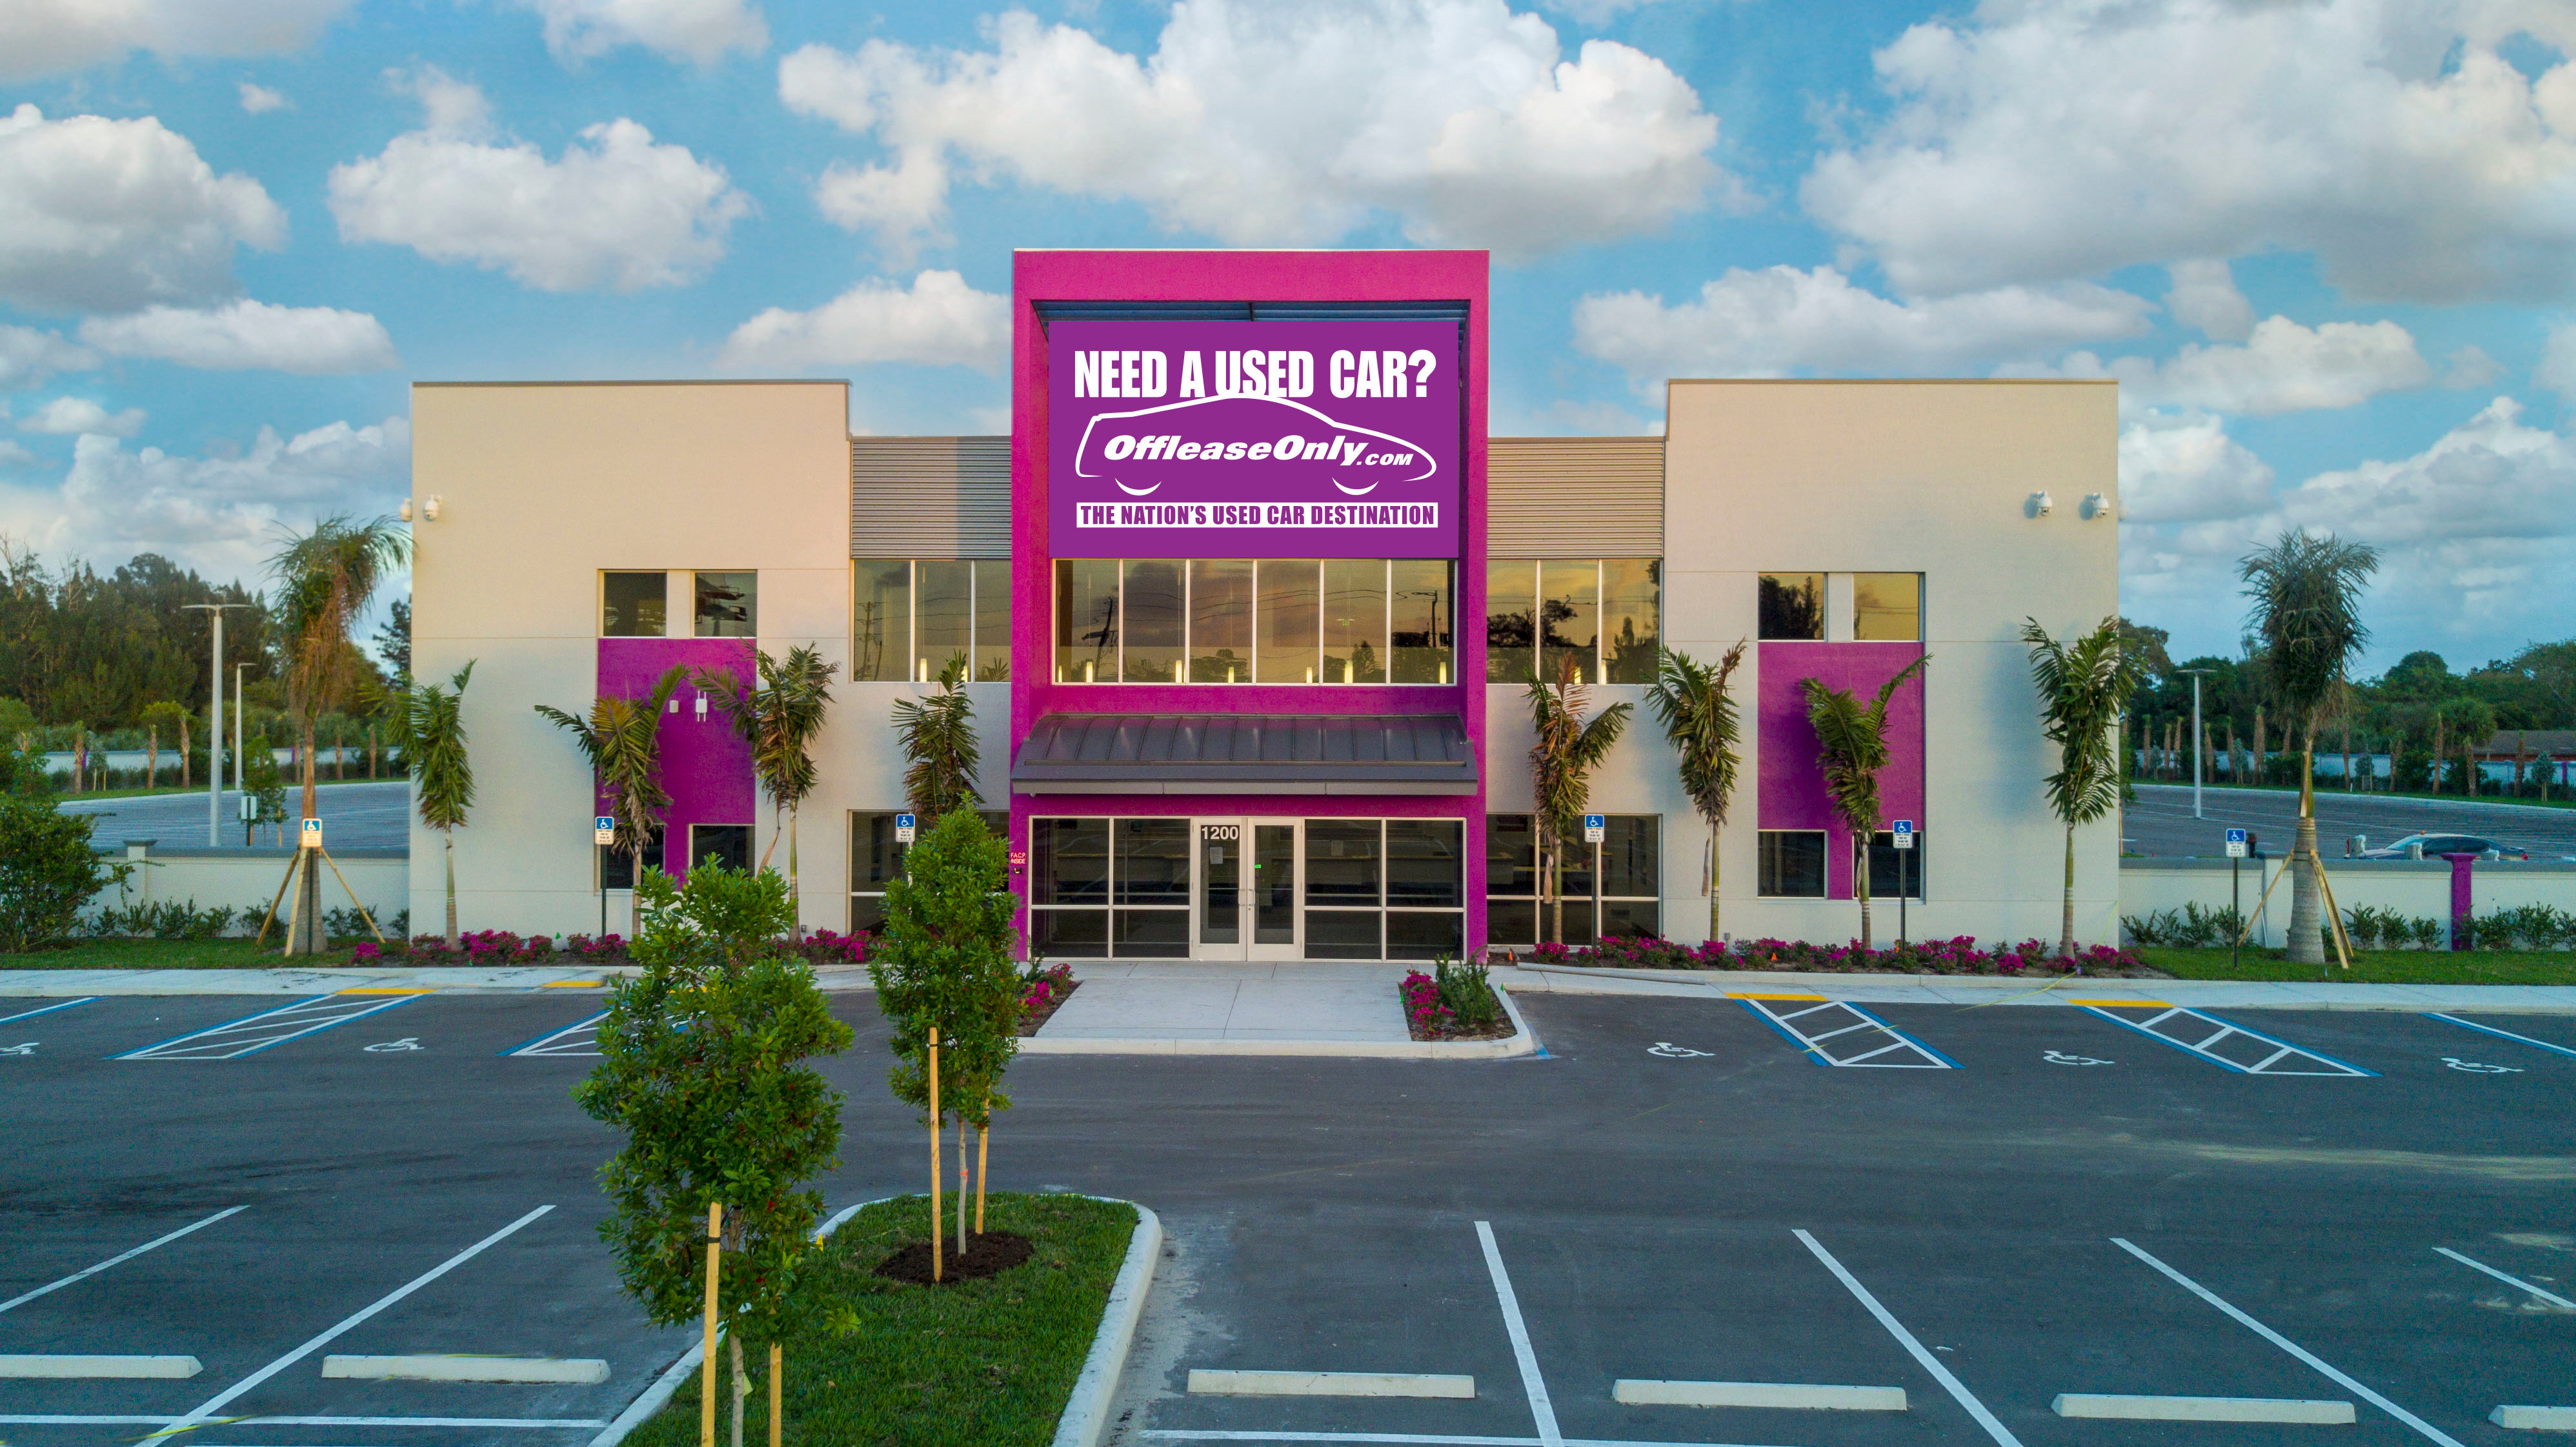 Off Lease Only In West Palm Beach Florida 33406 561 222 2277